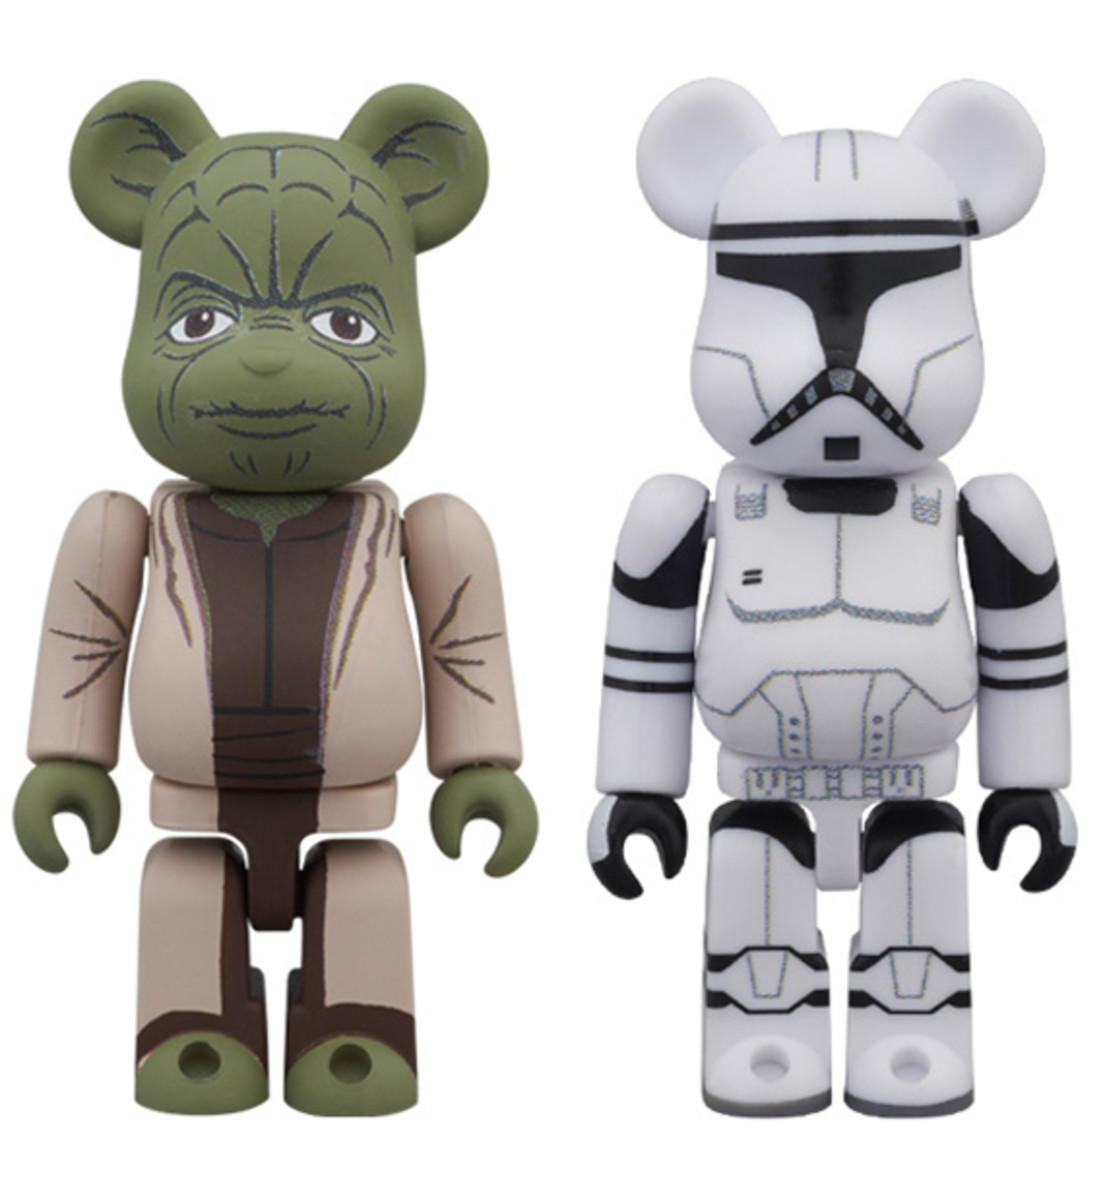 star-wars-medicom-toy-yoda-clone-trooper-bearbrick-pack-02